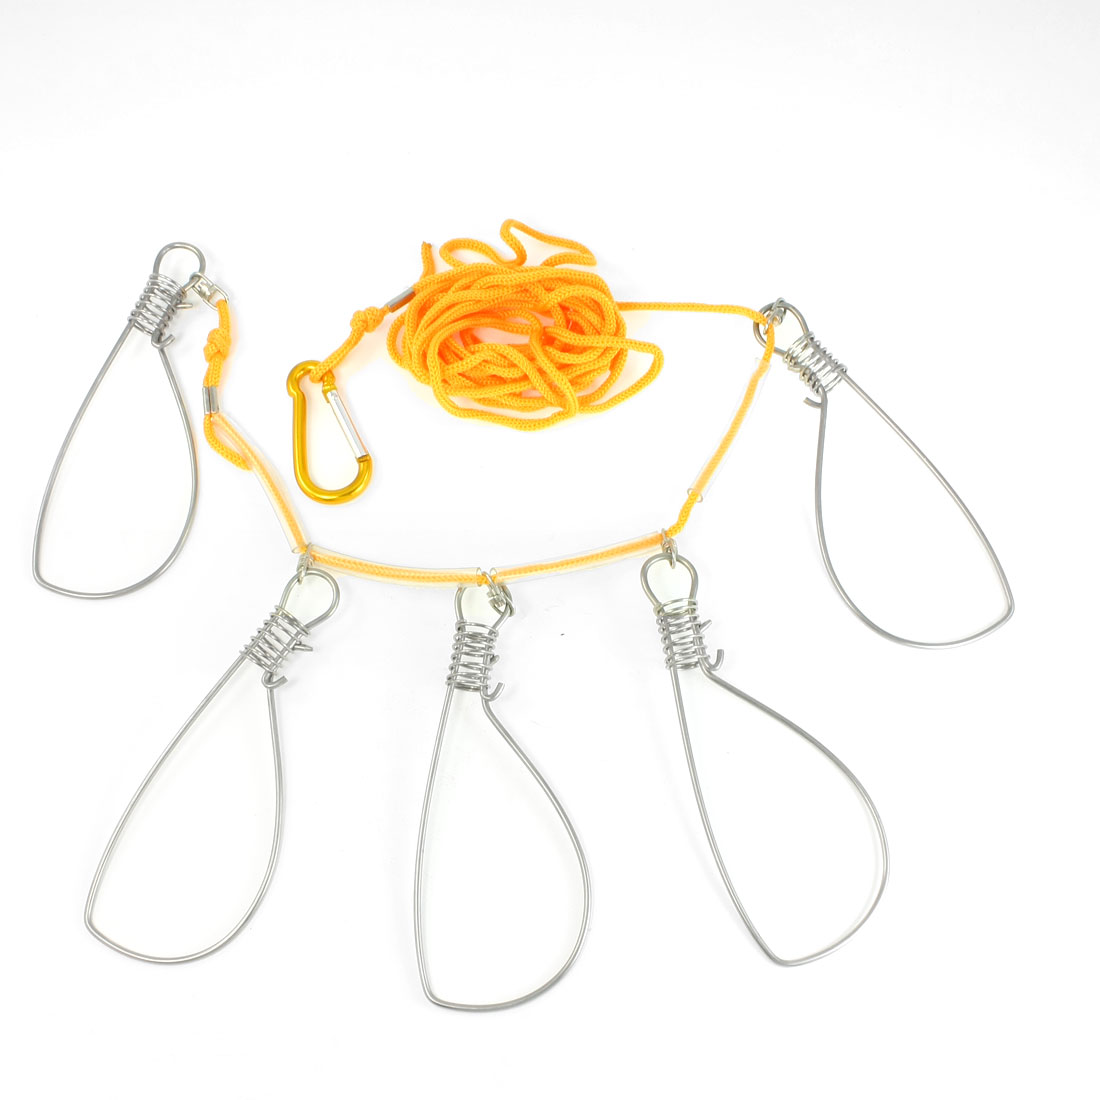 Gold Tone Safety Lobster Clip 3.6M Yellow String 5 Metal Snaps Fish Stringer